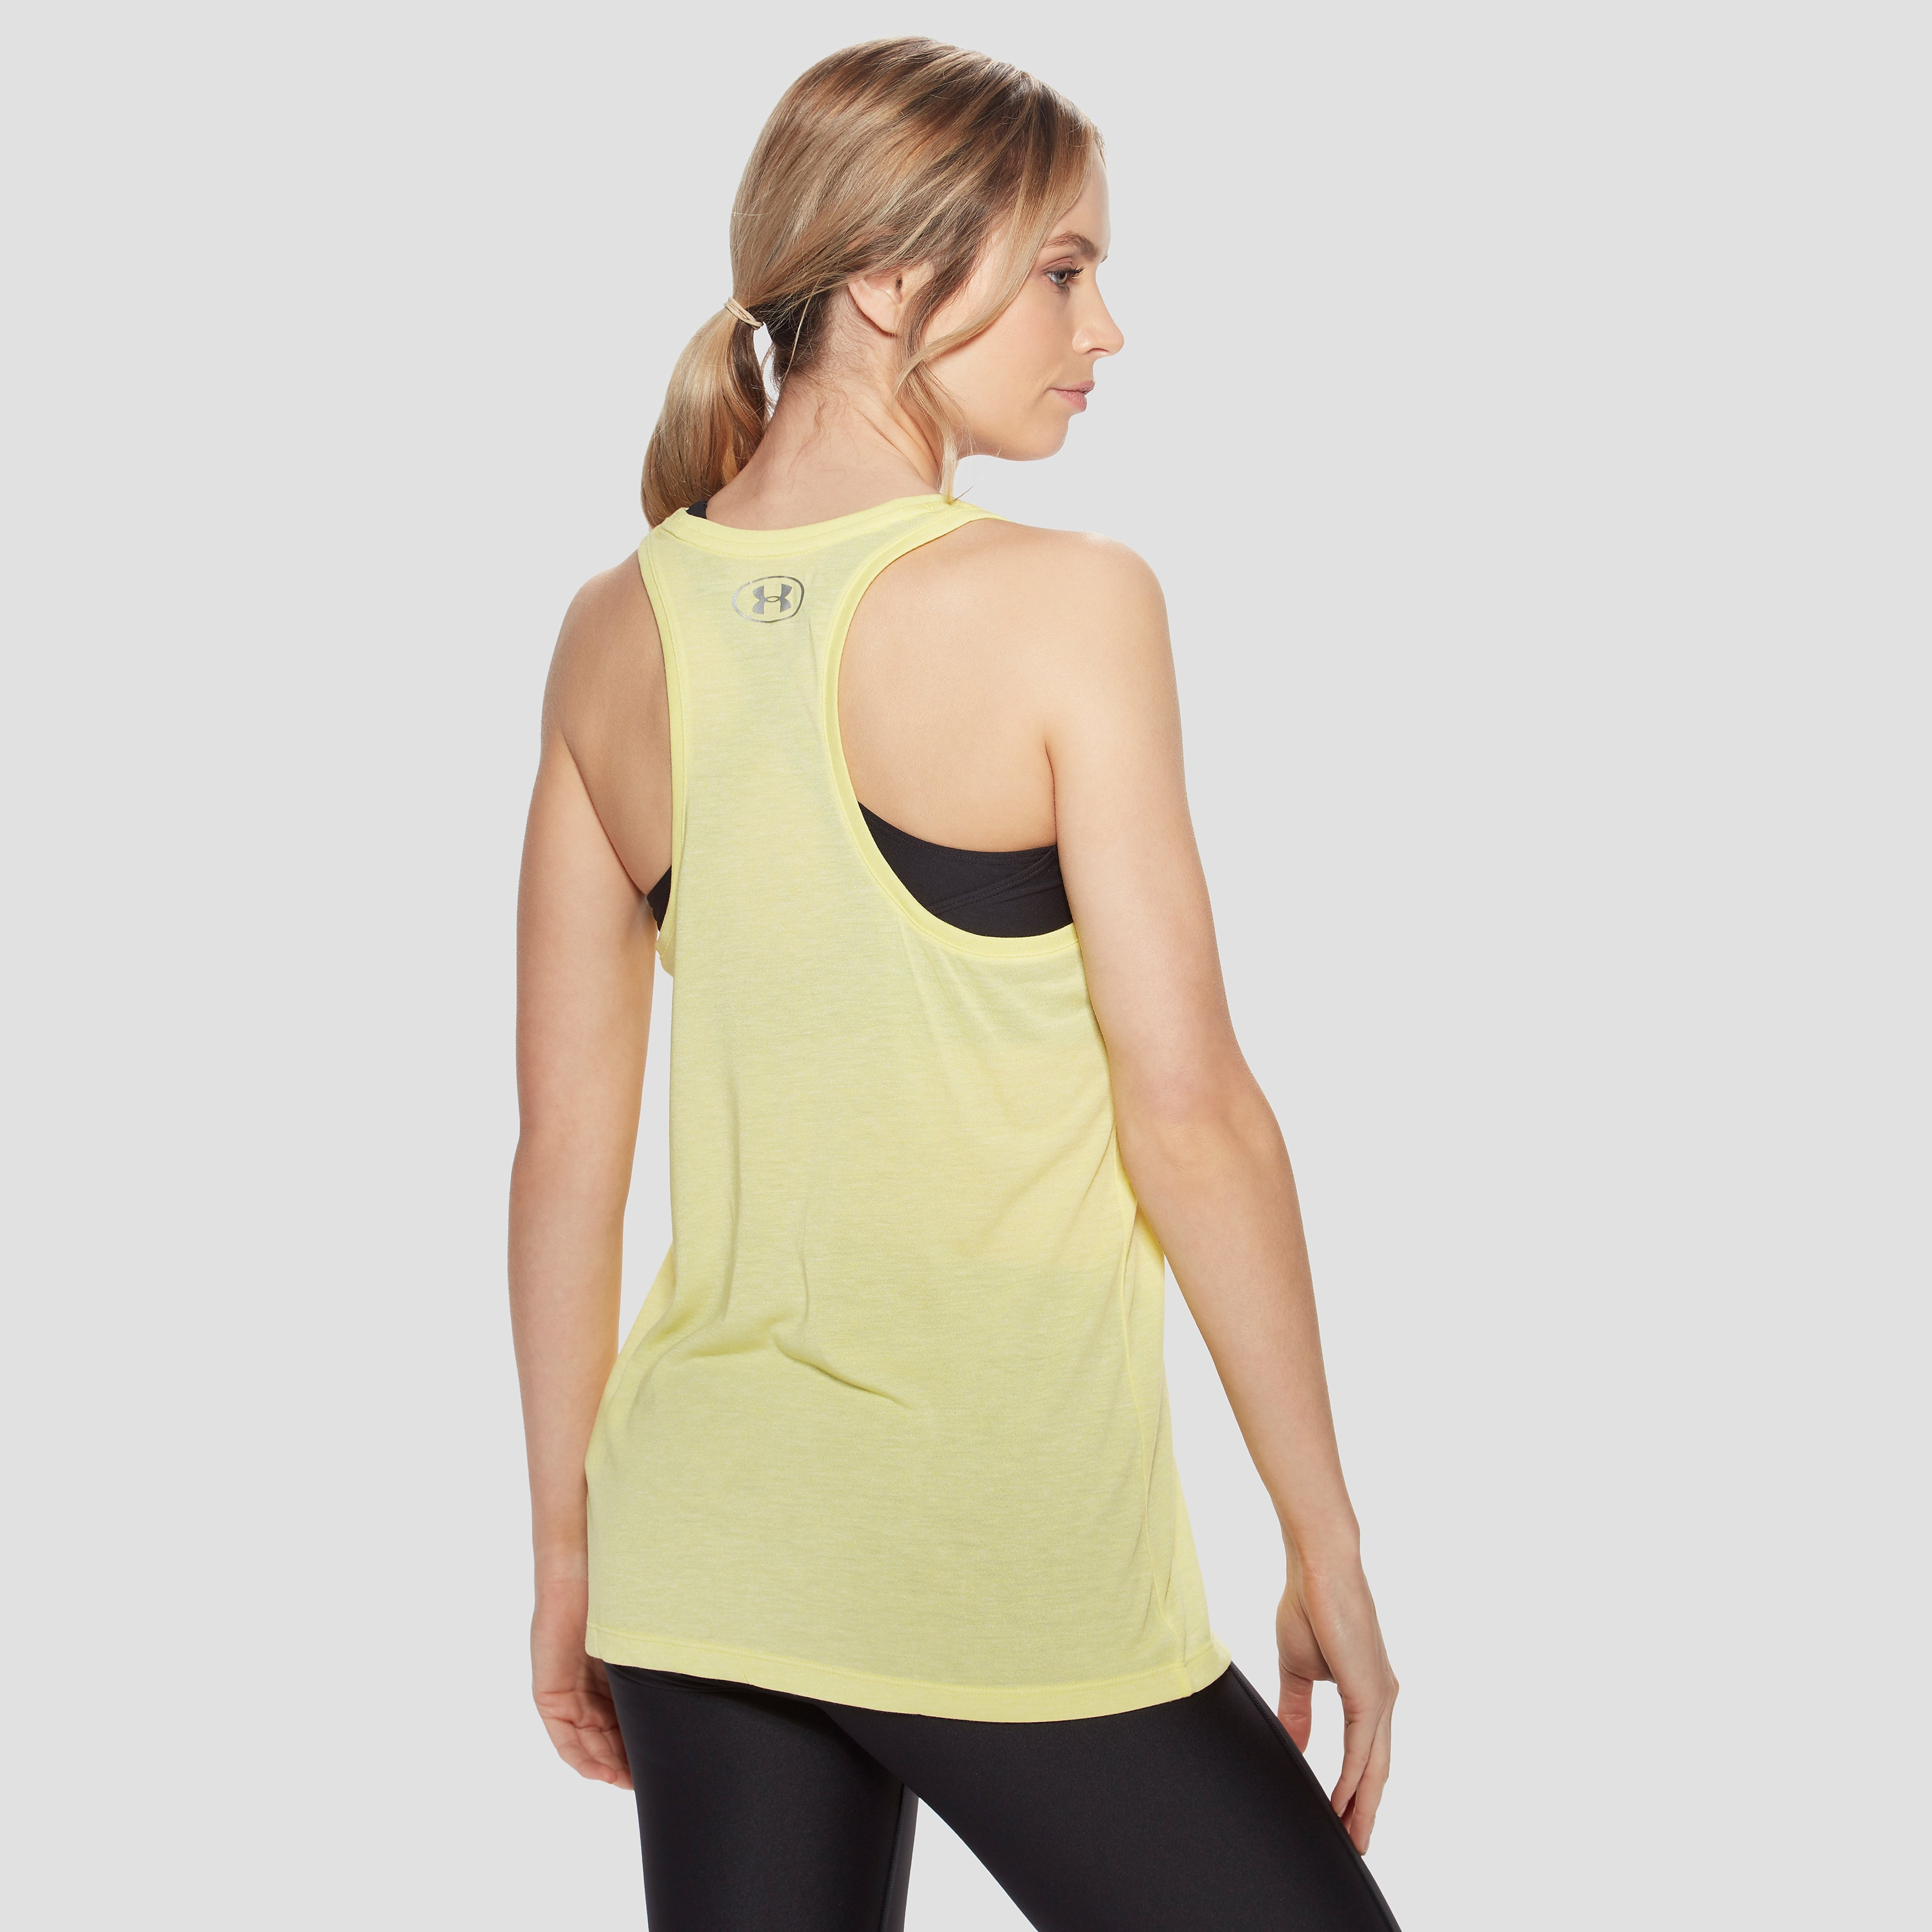 Under Armour Threadborne Women's Training Tank